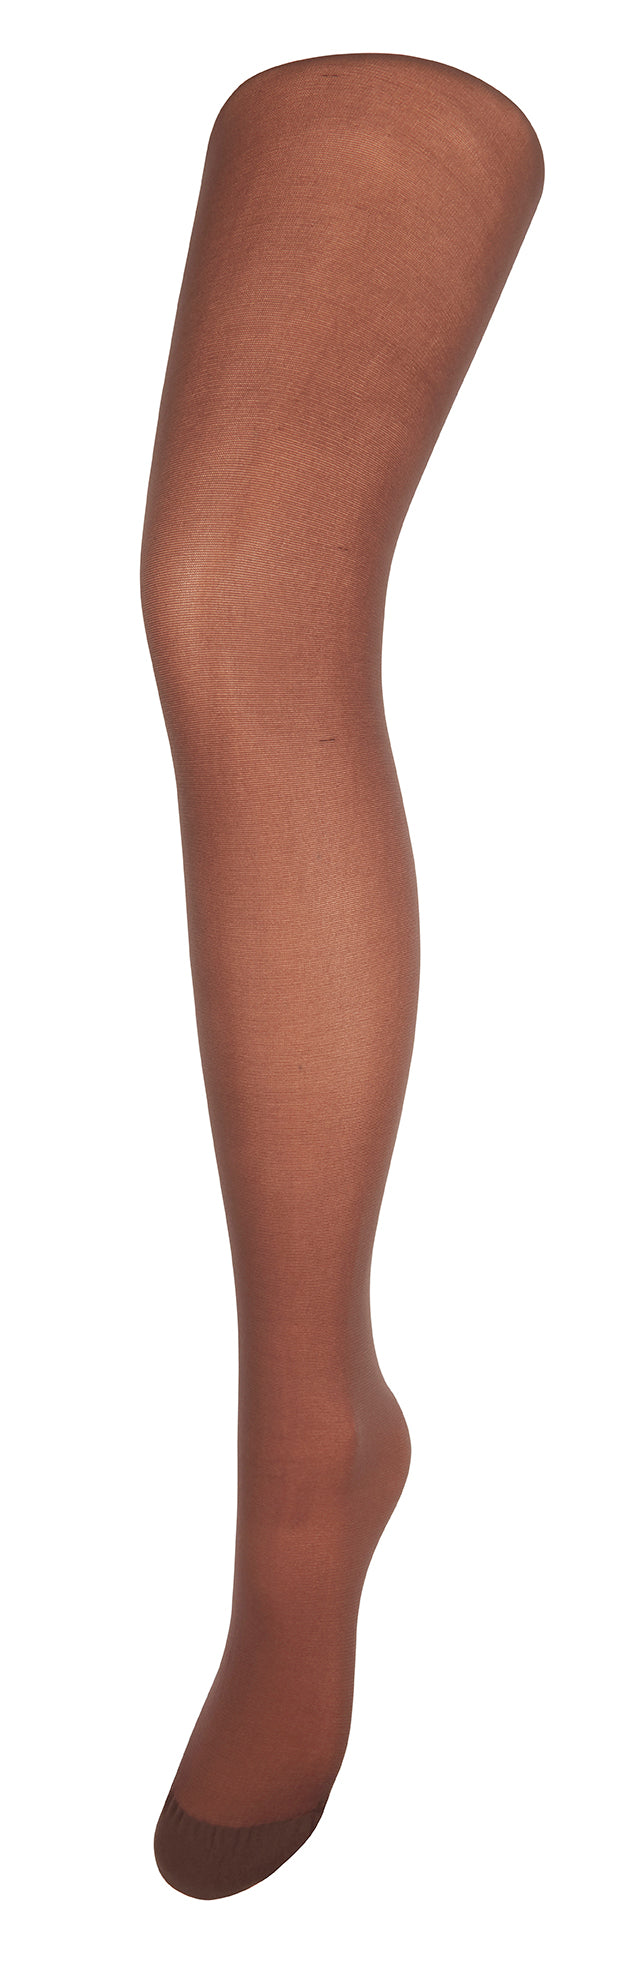 MS SHAPE Sheer Tights 30 Denier